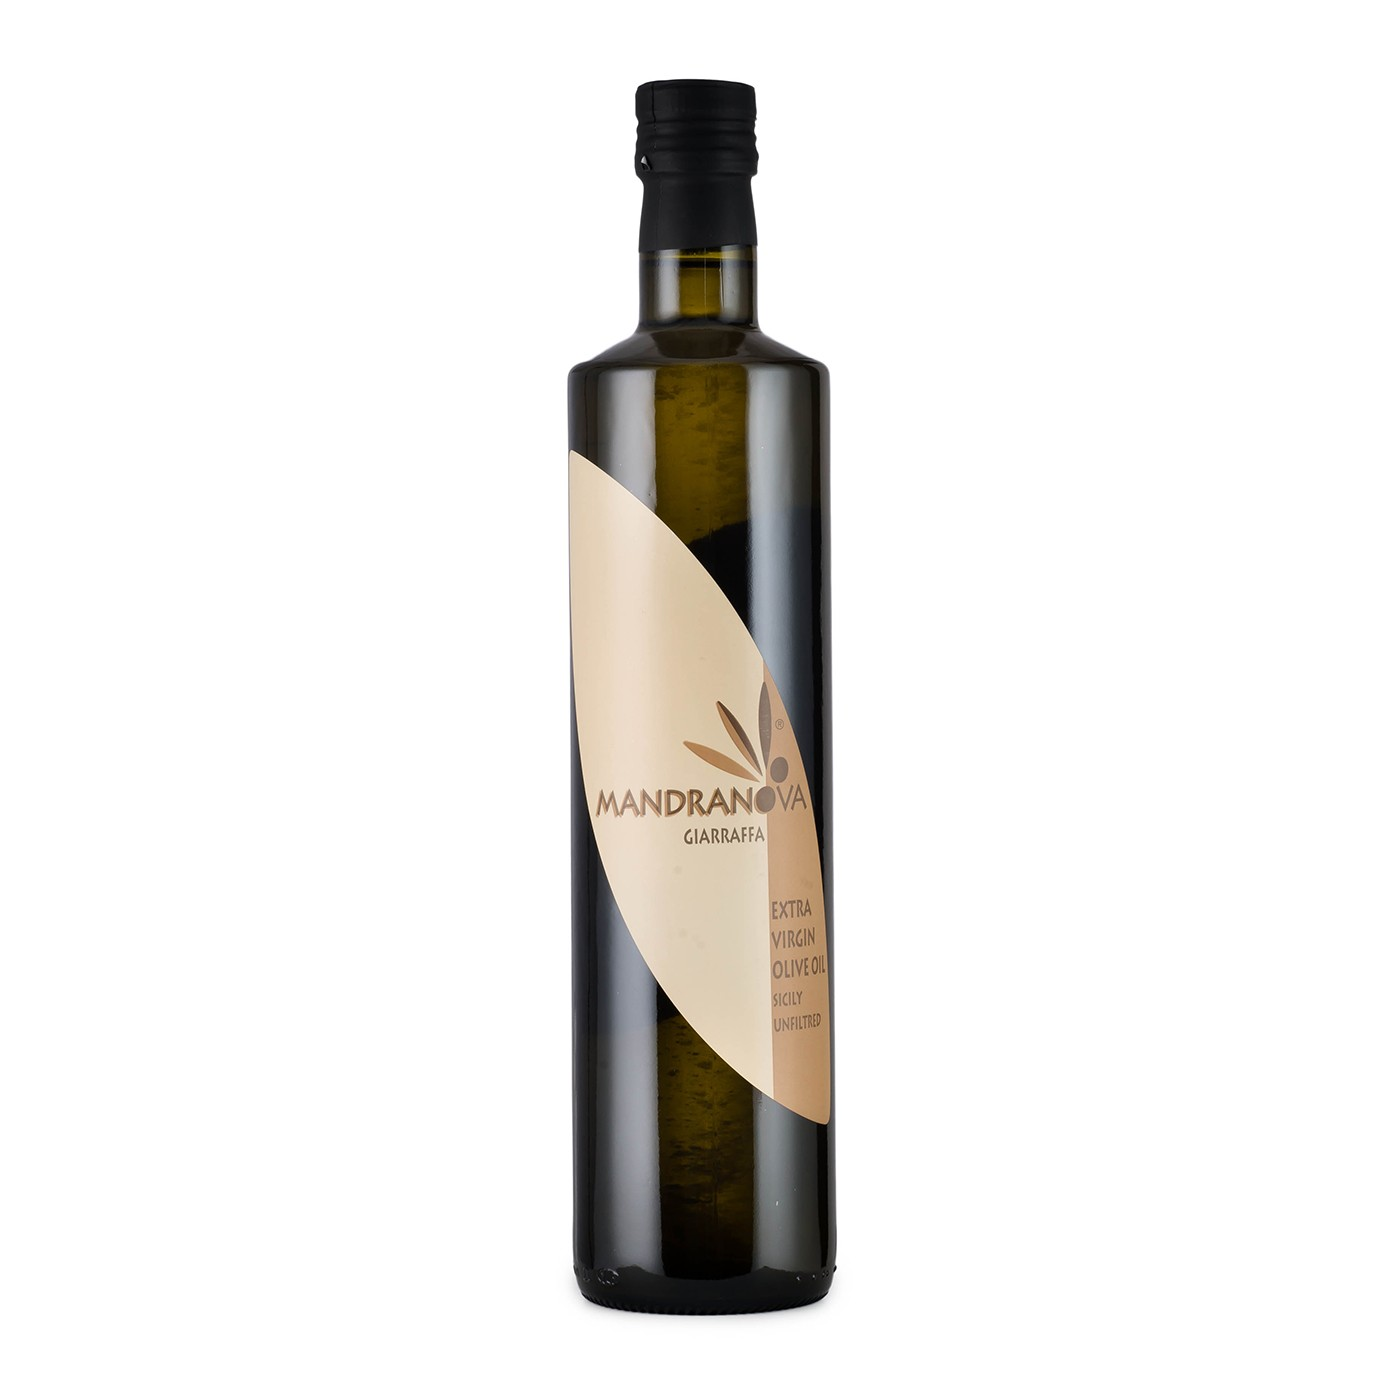 Giarraffa Extra Virgin Olive Oil 25.4 fl oz